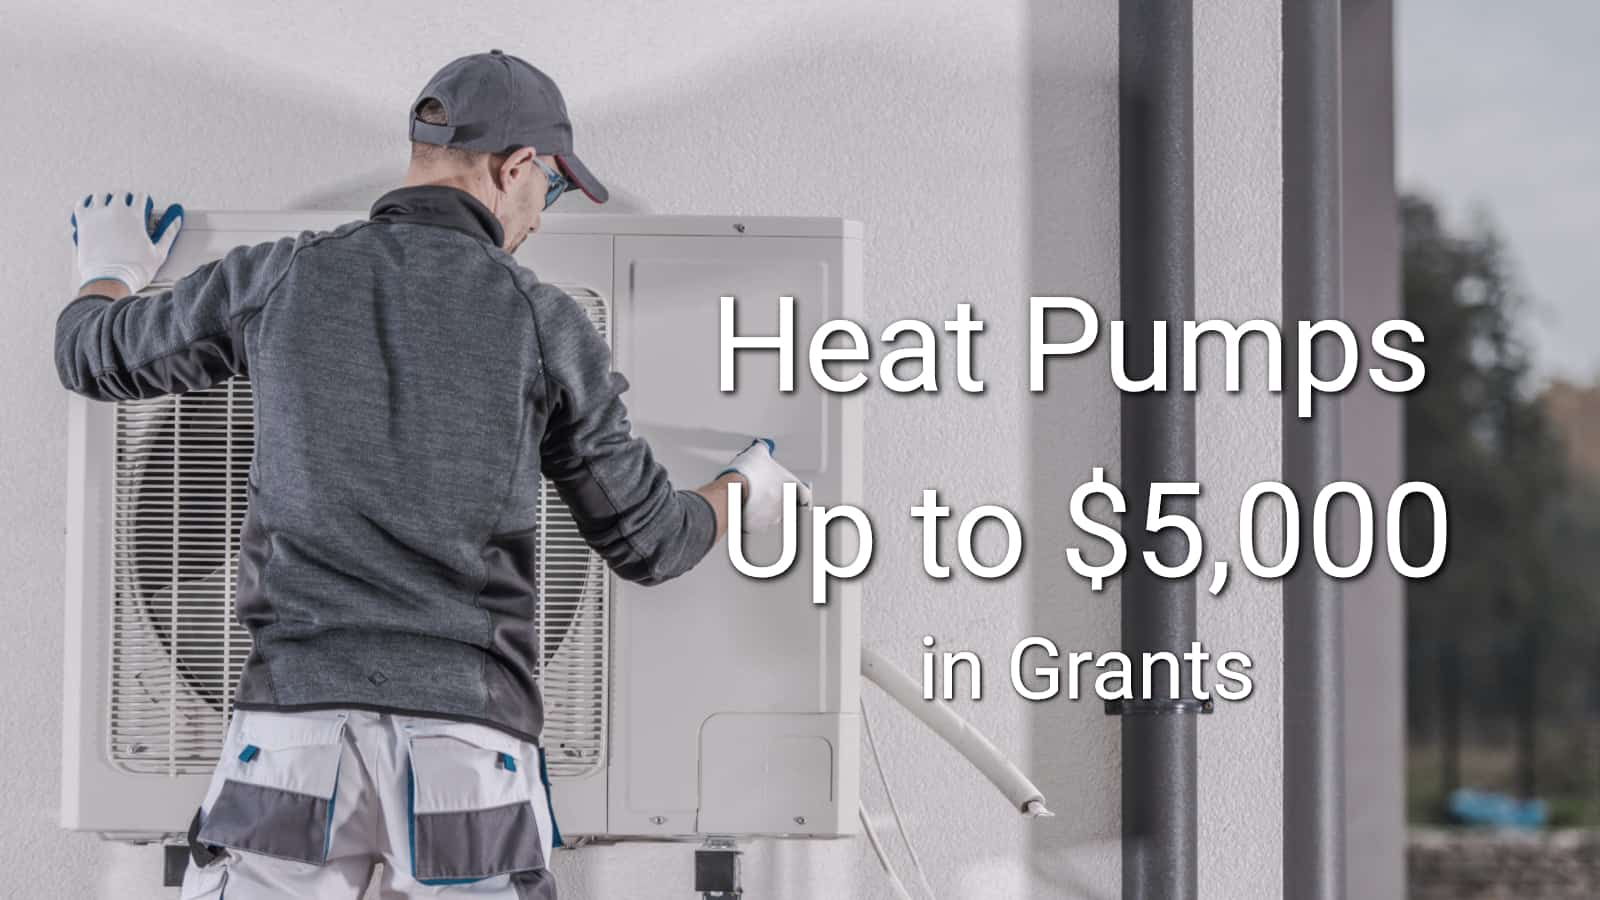 Heat Pumps | up to $5,000 Grant